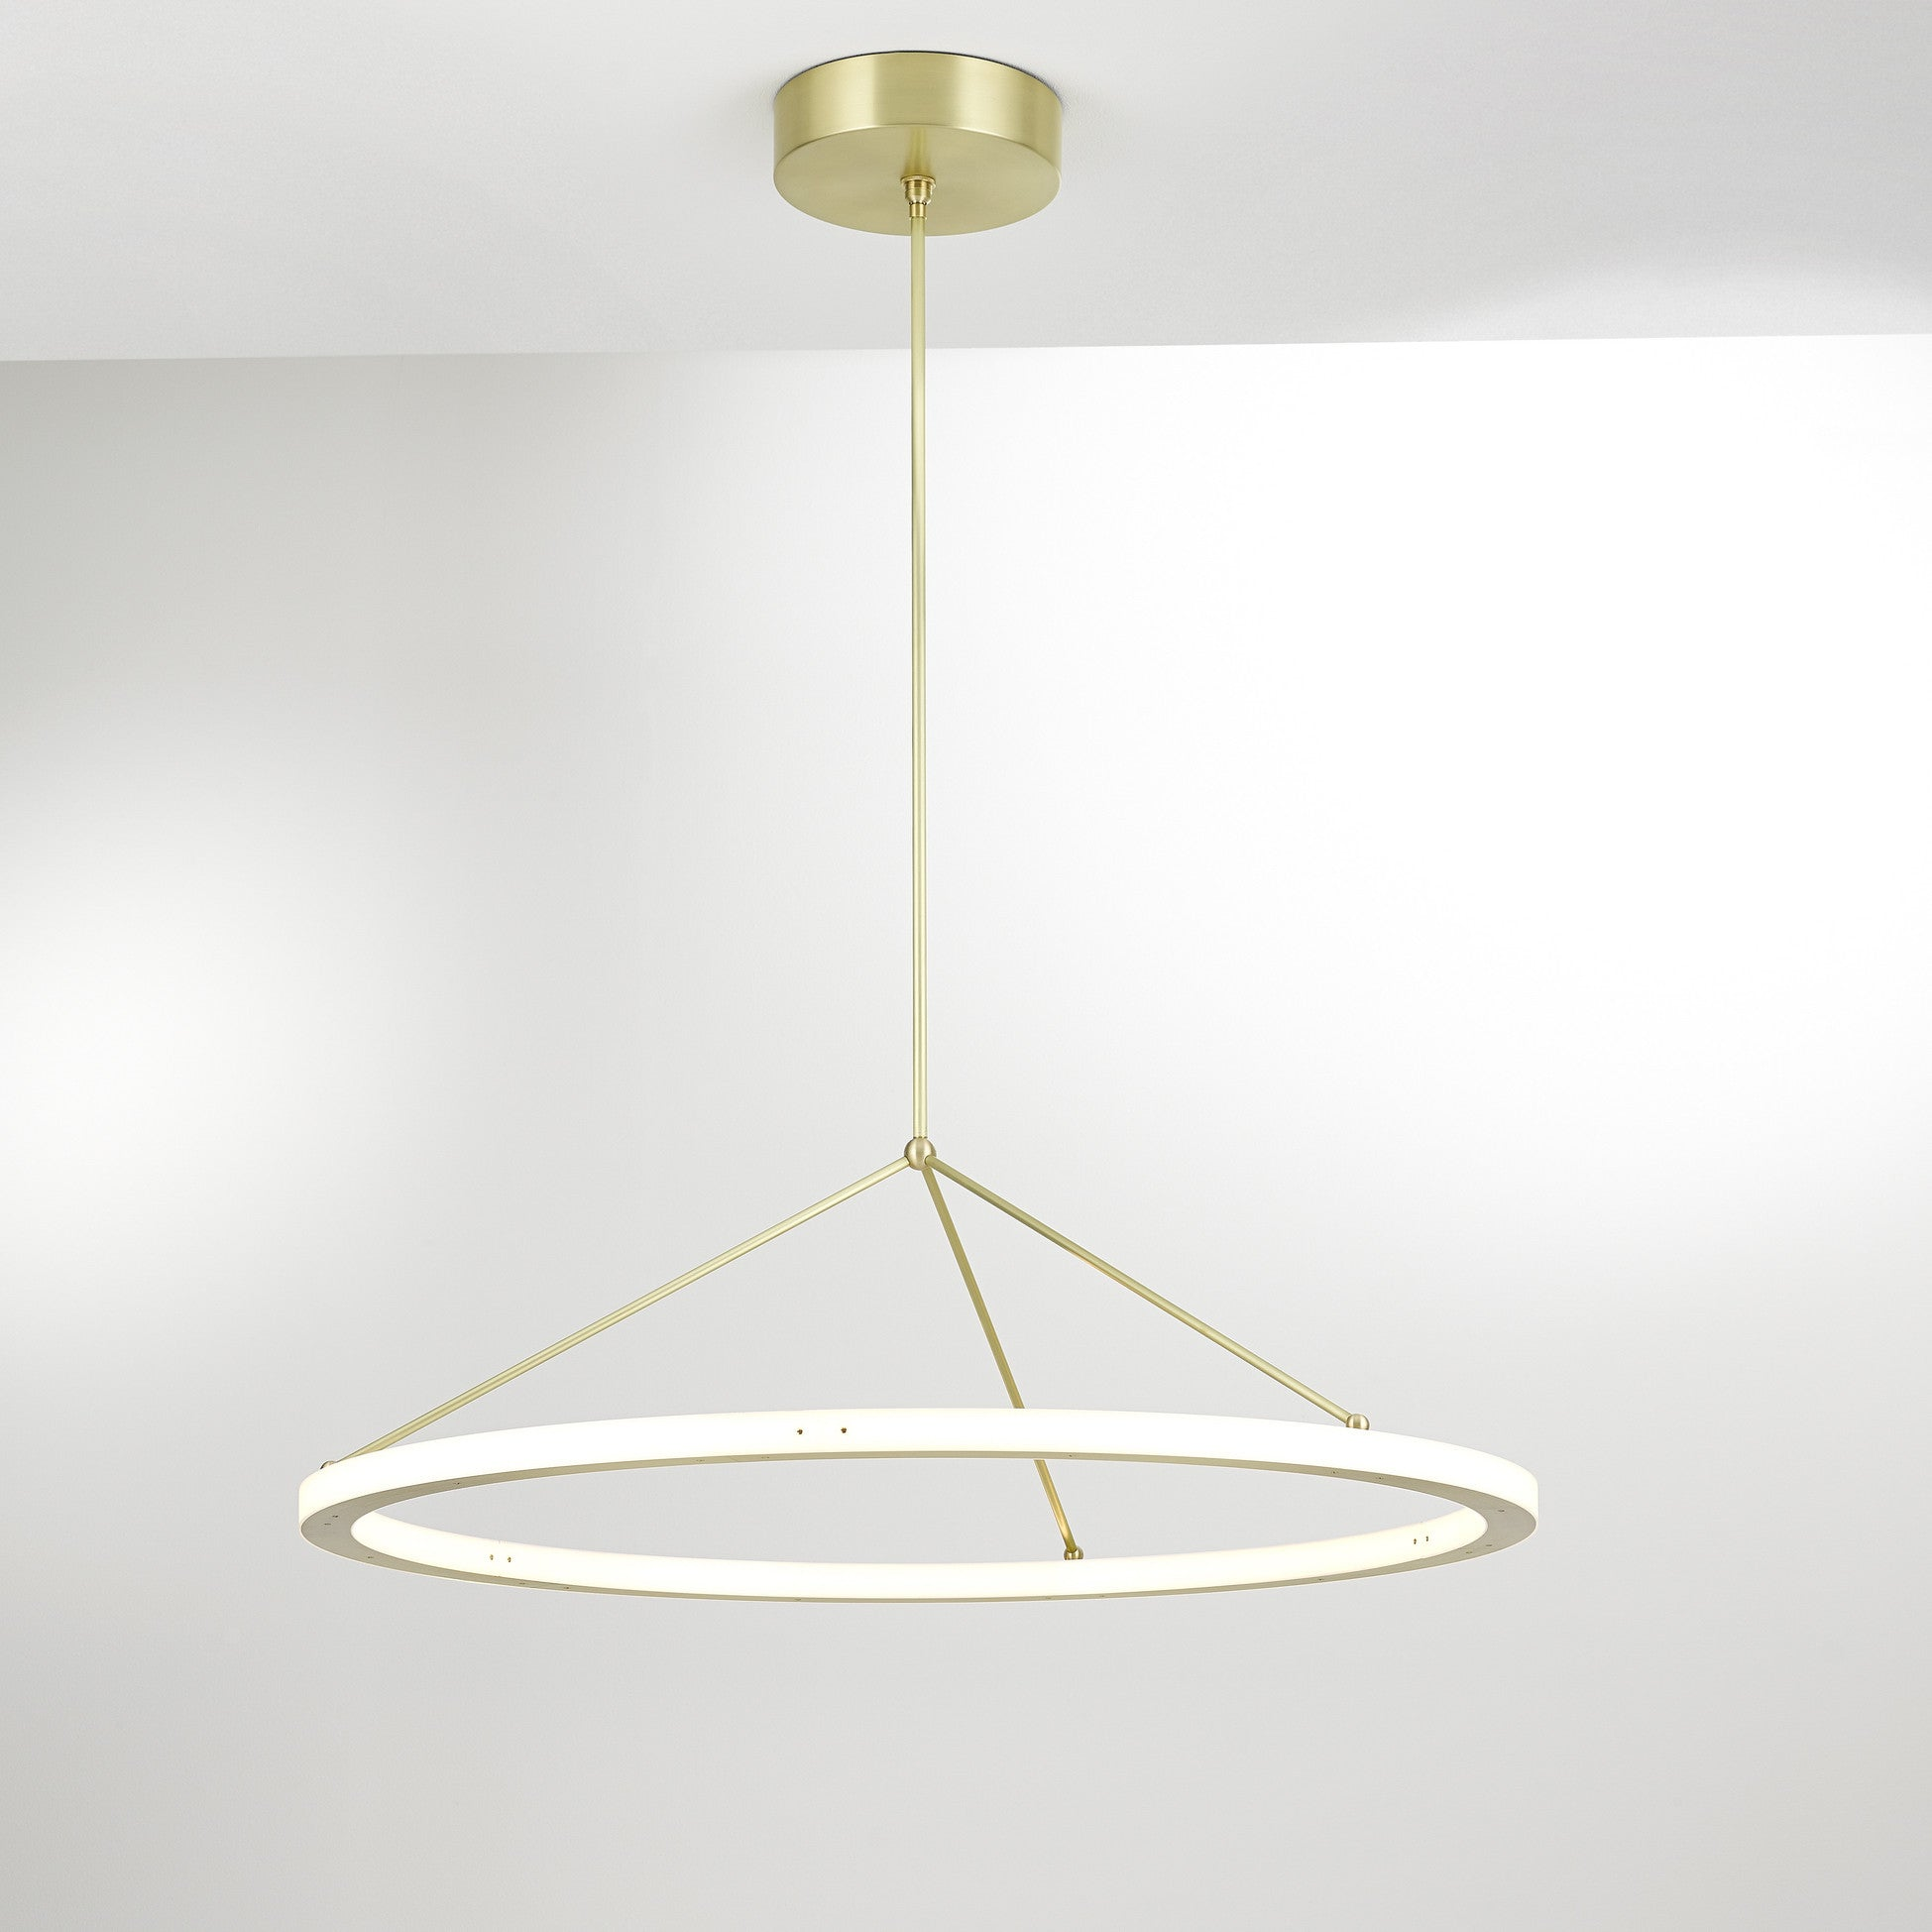 & KAIA - RIO In and Out Pendant | Stillfried Wien - New York azcodes.com